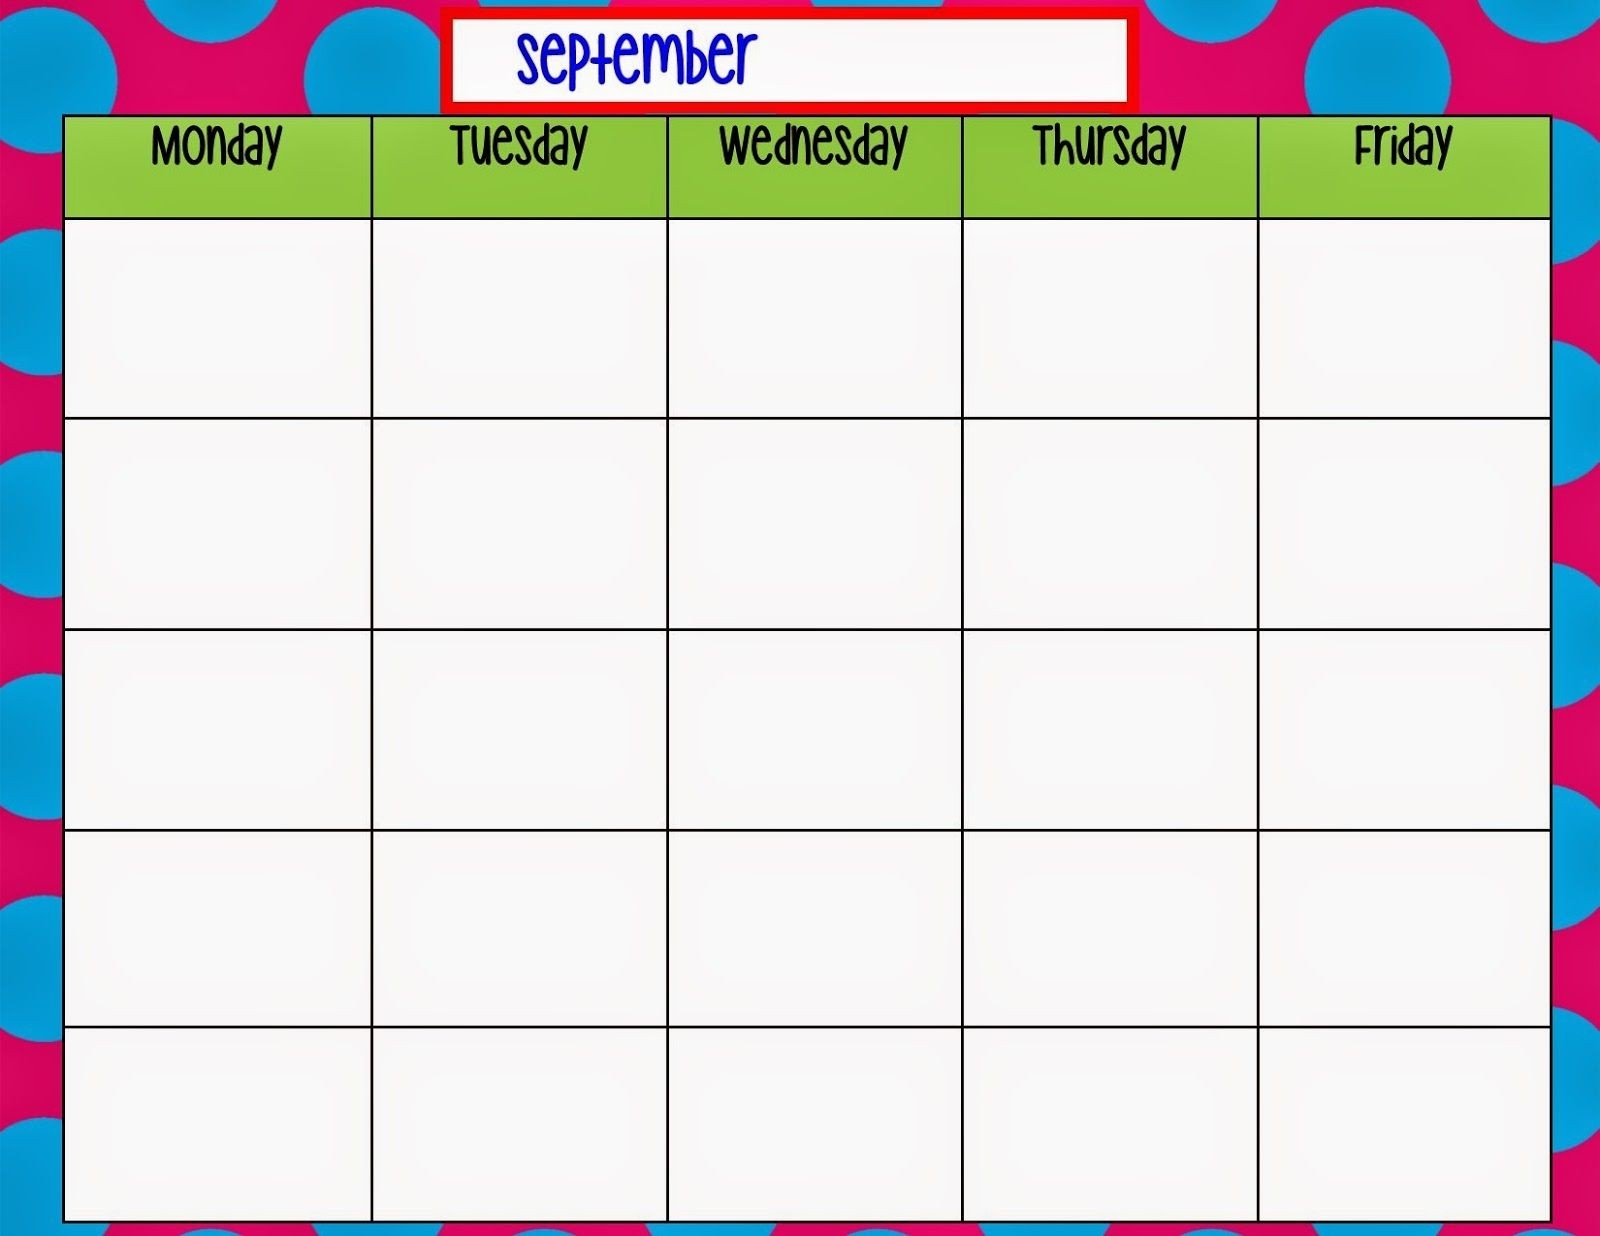 Monday Through Friday Calendar Template | Preschool | Weekly-Monday-Friday Blank Weekly Schedule